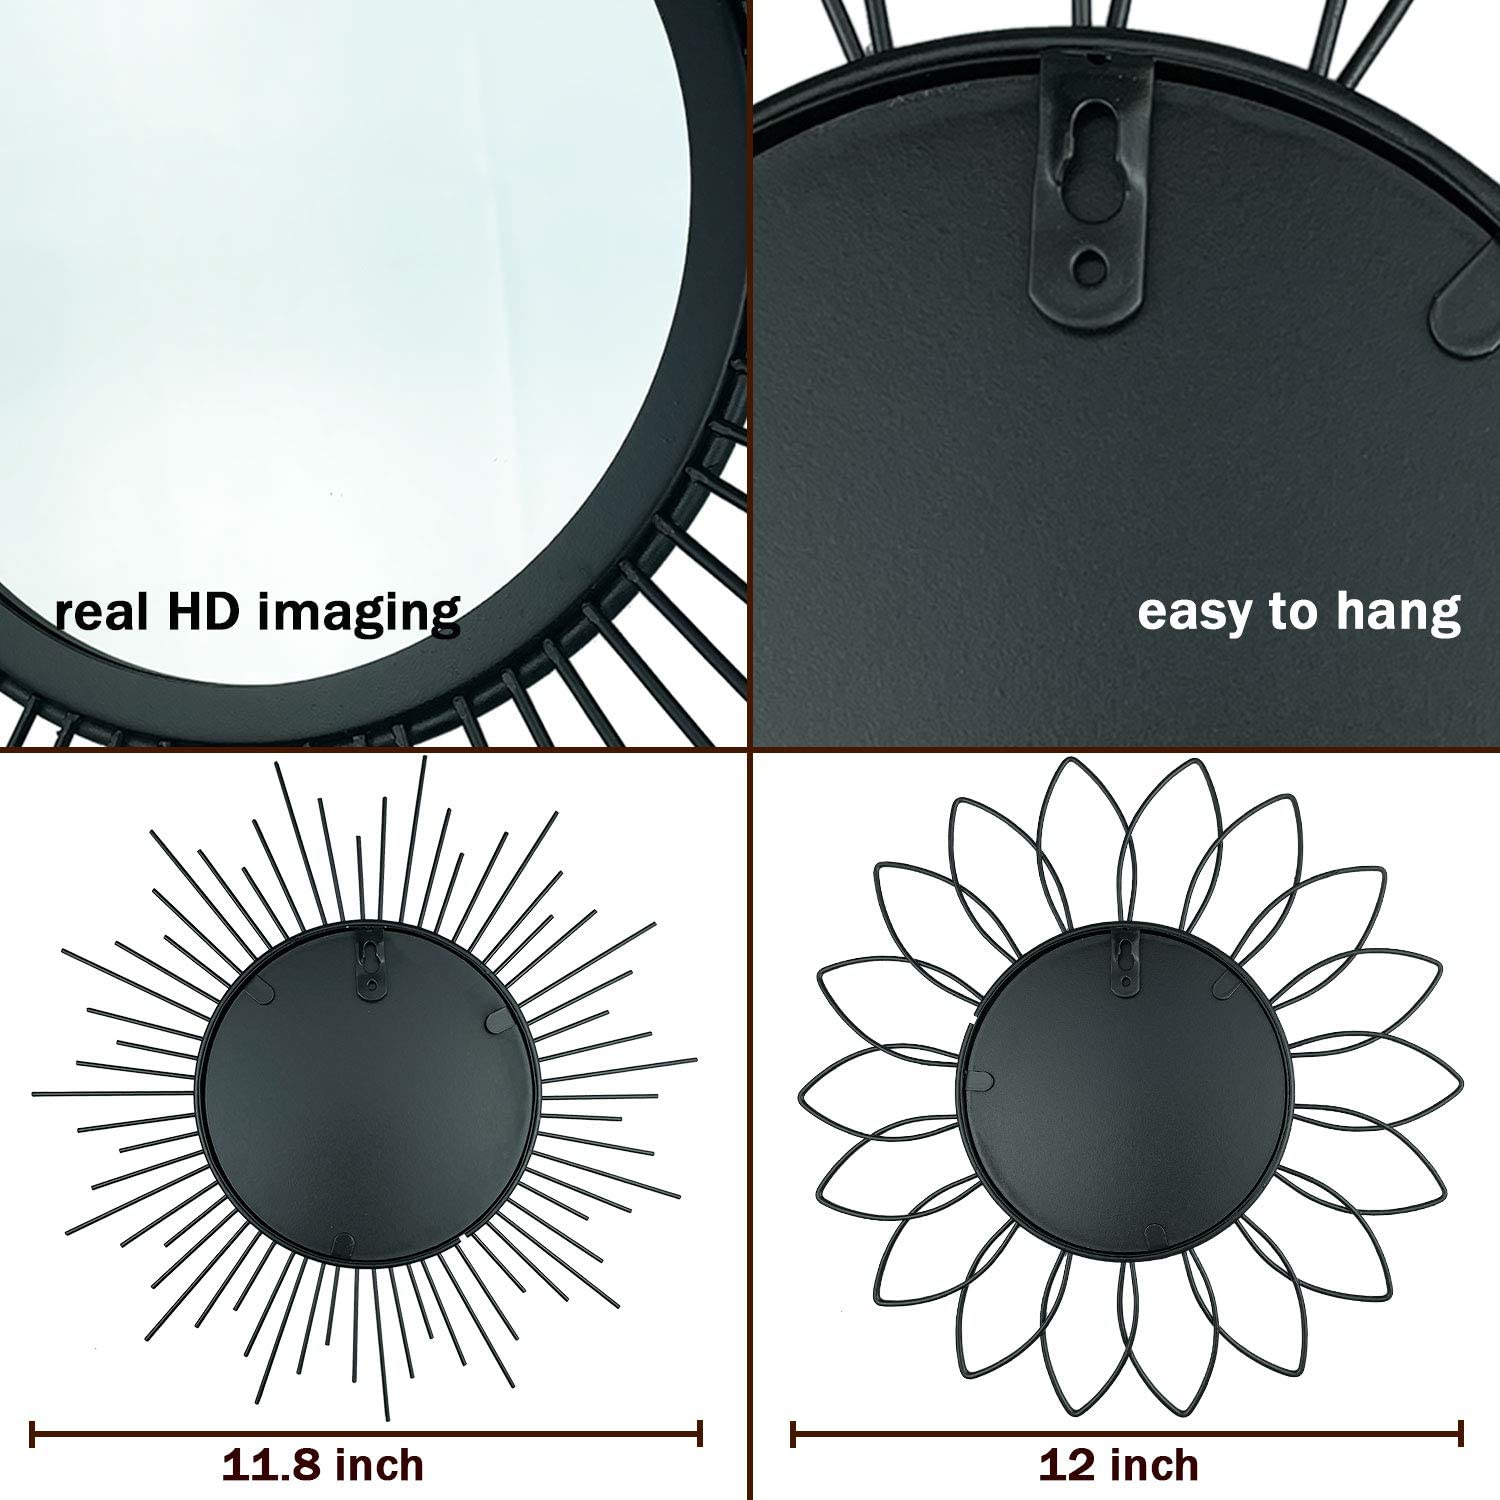 Uaussi 3 Pack Metal Wall Mirrors Black Circle Mirror Classic Decorative Hanging Wall Art Modern for Home Decor Bathroom Bedroom Living Room